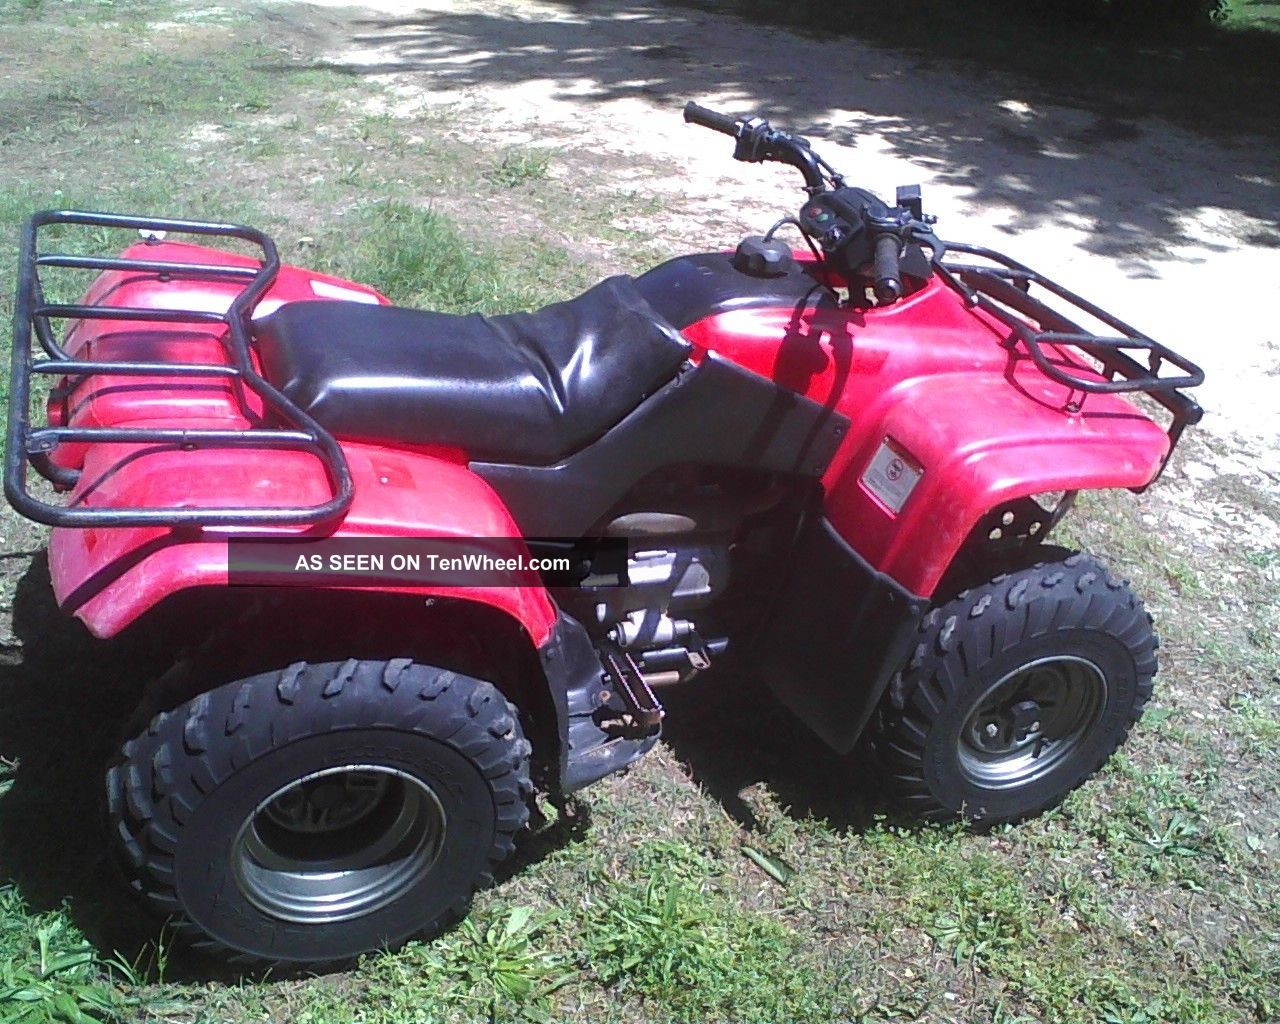 2002 honda recon wiring diagram with Honda Trx 400 Carb Diagram on Yamaha Bear Tracker 250 Oil Filter together with Honda Cr 125 Manual further 1987 Trx250 Wiring Diagram likewise Walpapers Anime Hot Hd Con Zoom further 40395 Stator Question French Wel e.